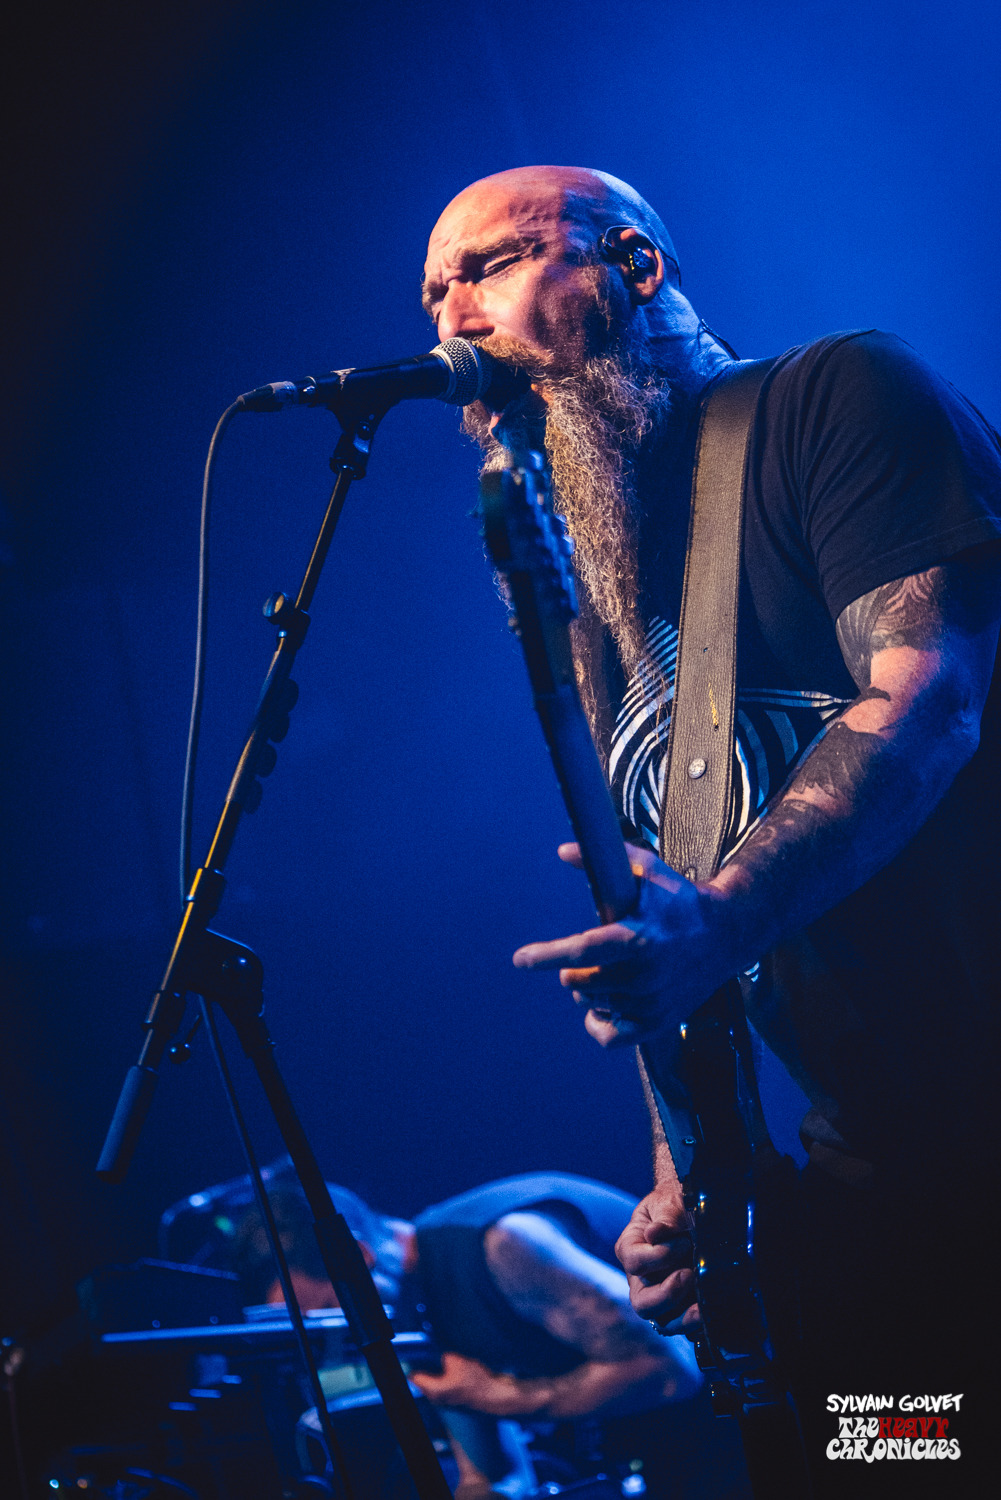 NEUROSIS-BATACLAN-THE-HEAVY-CHRONICLES-180719-5